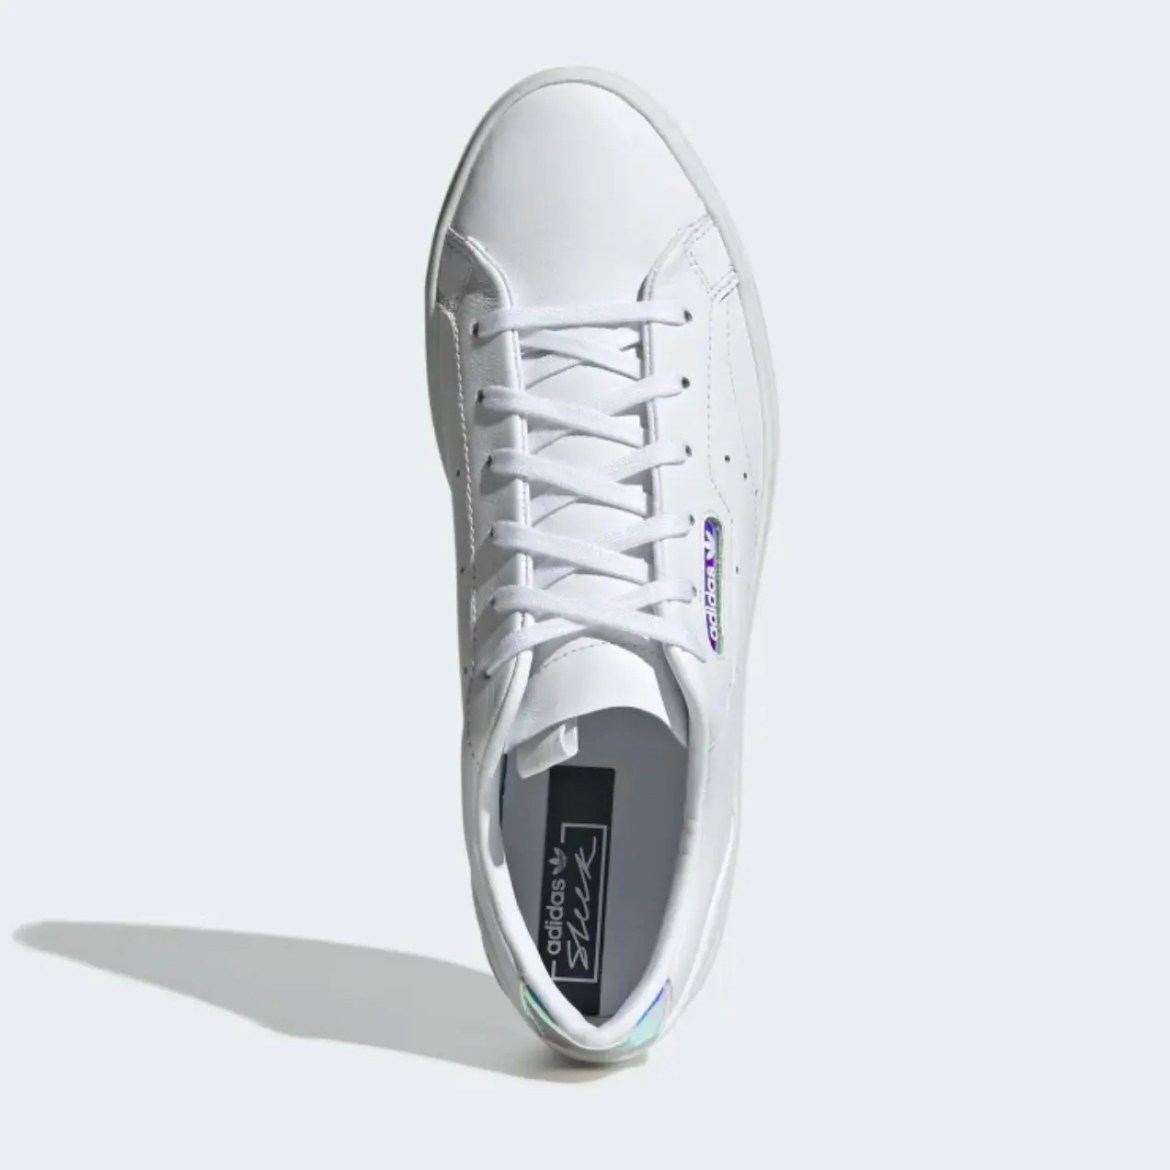 adidas sleek shoes Cloud White Crystal White Core Black EG2685-02